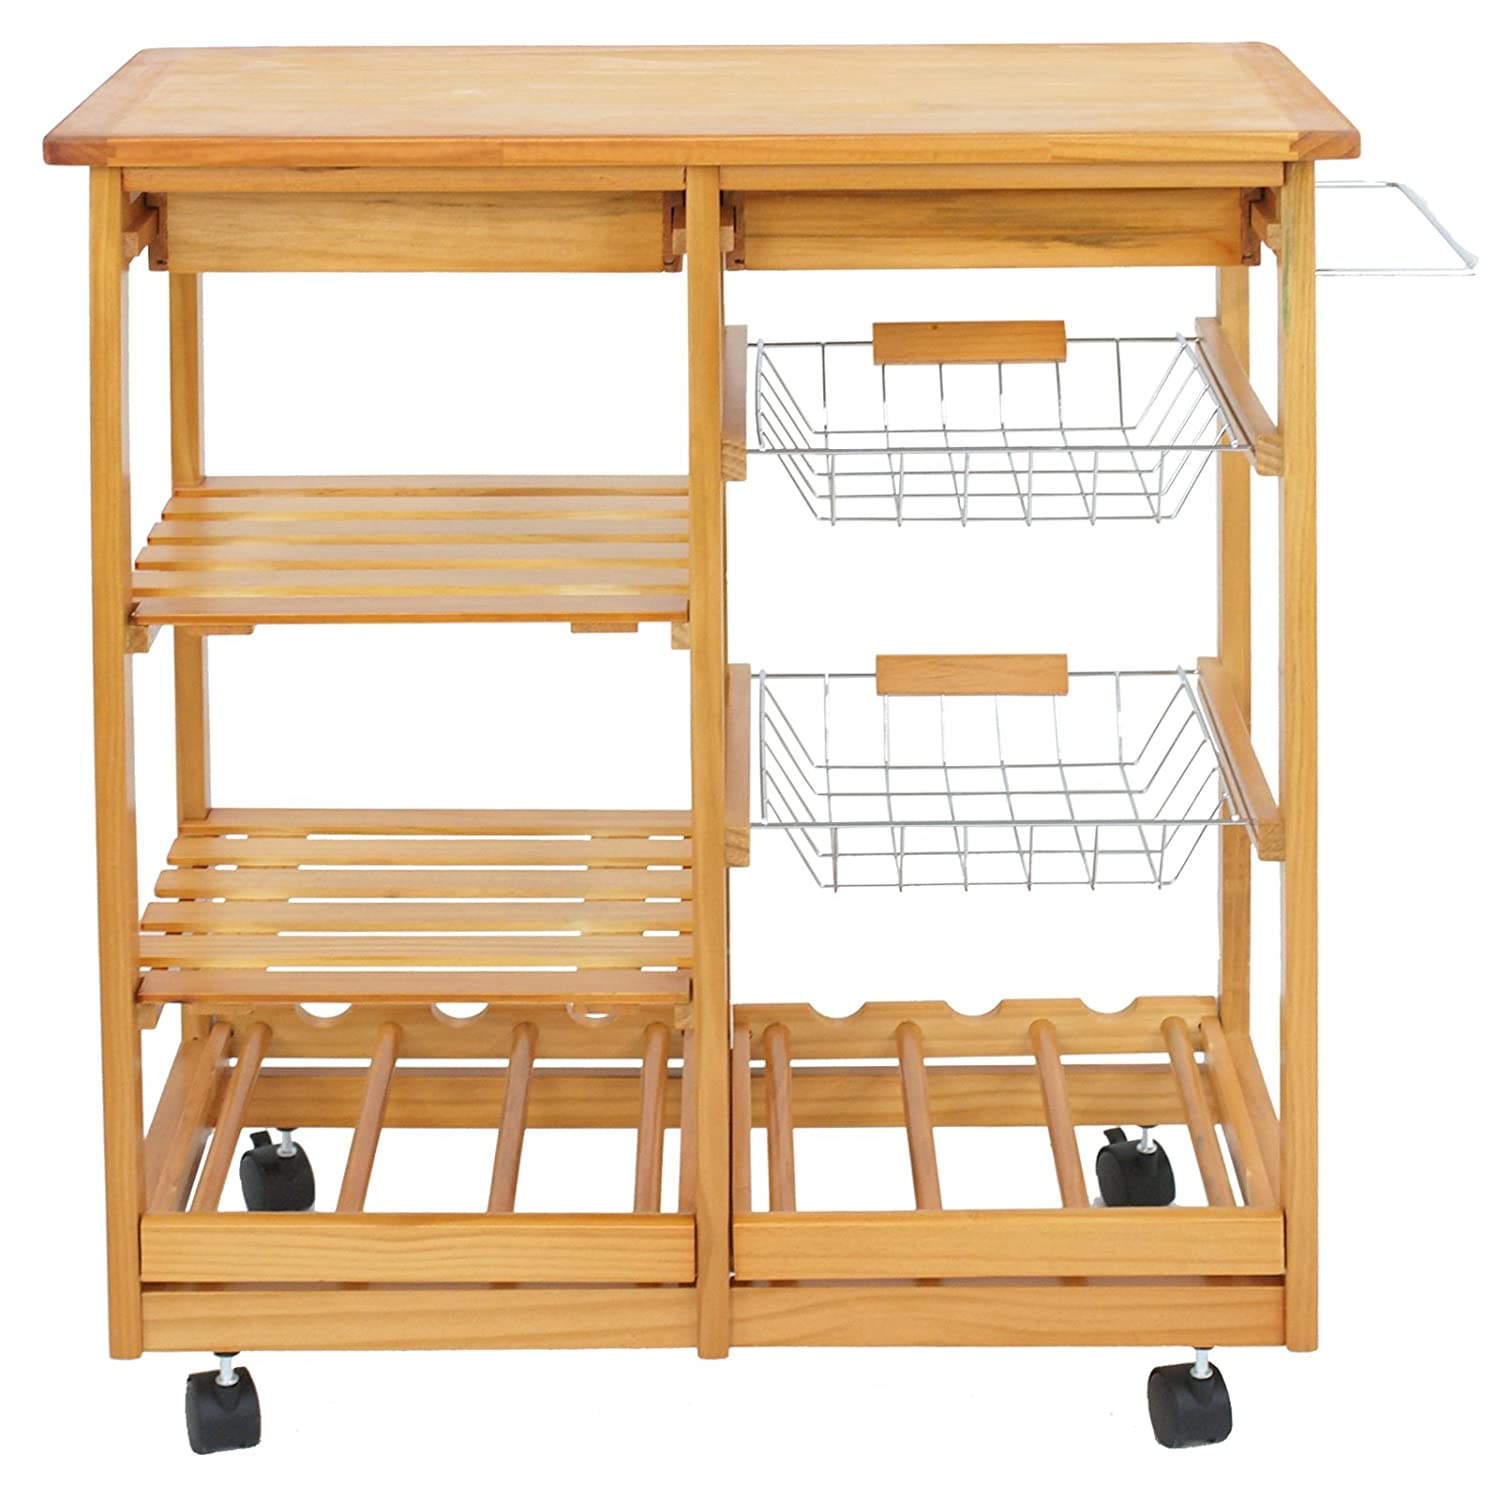 Nova Microdermabrasion Rolling Wood Kitchen Island Storage Trolley Utility Cart Rack w Storage Drawers Baskets Dining Stand w Wheels Countertop Wood